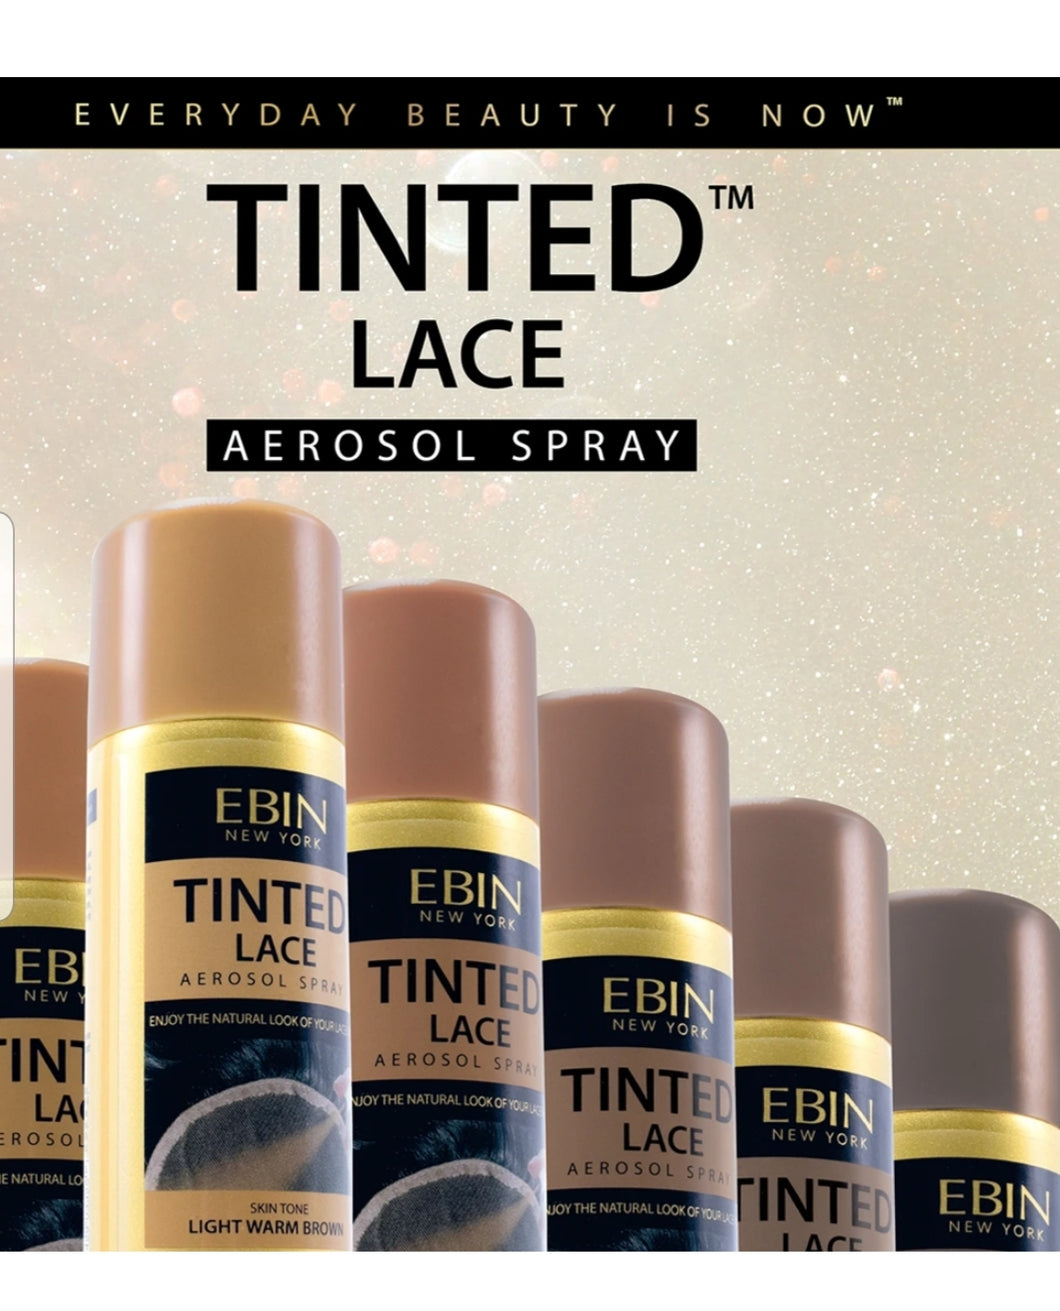 Tinted Lace Aerosol Spray - Ebin New York